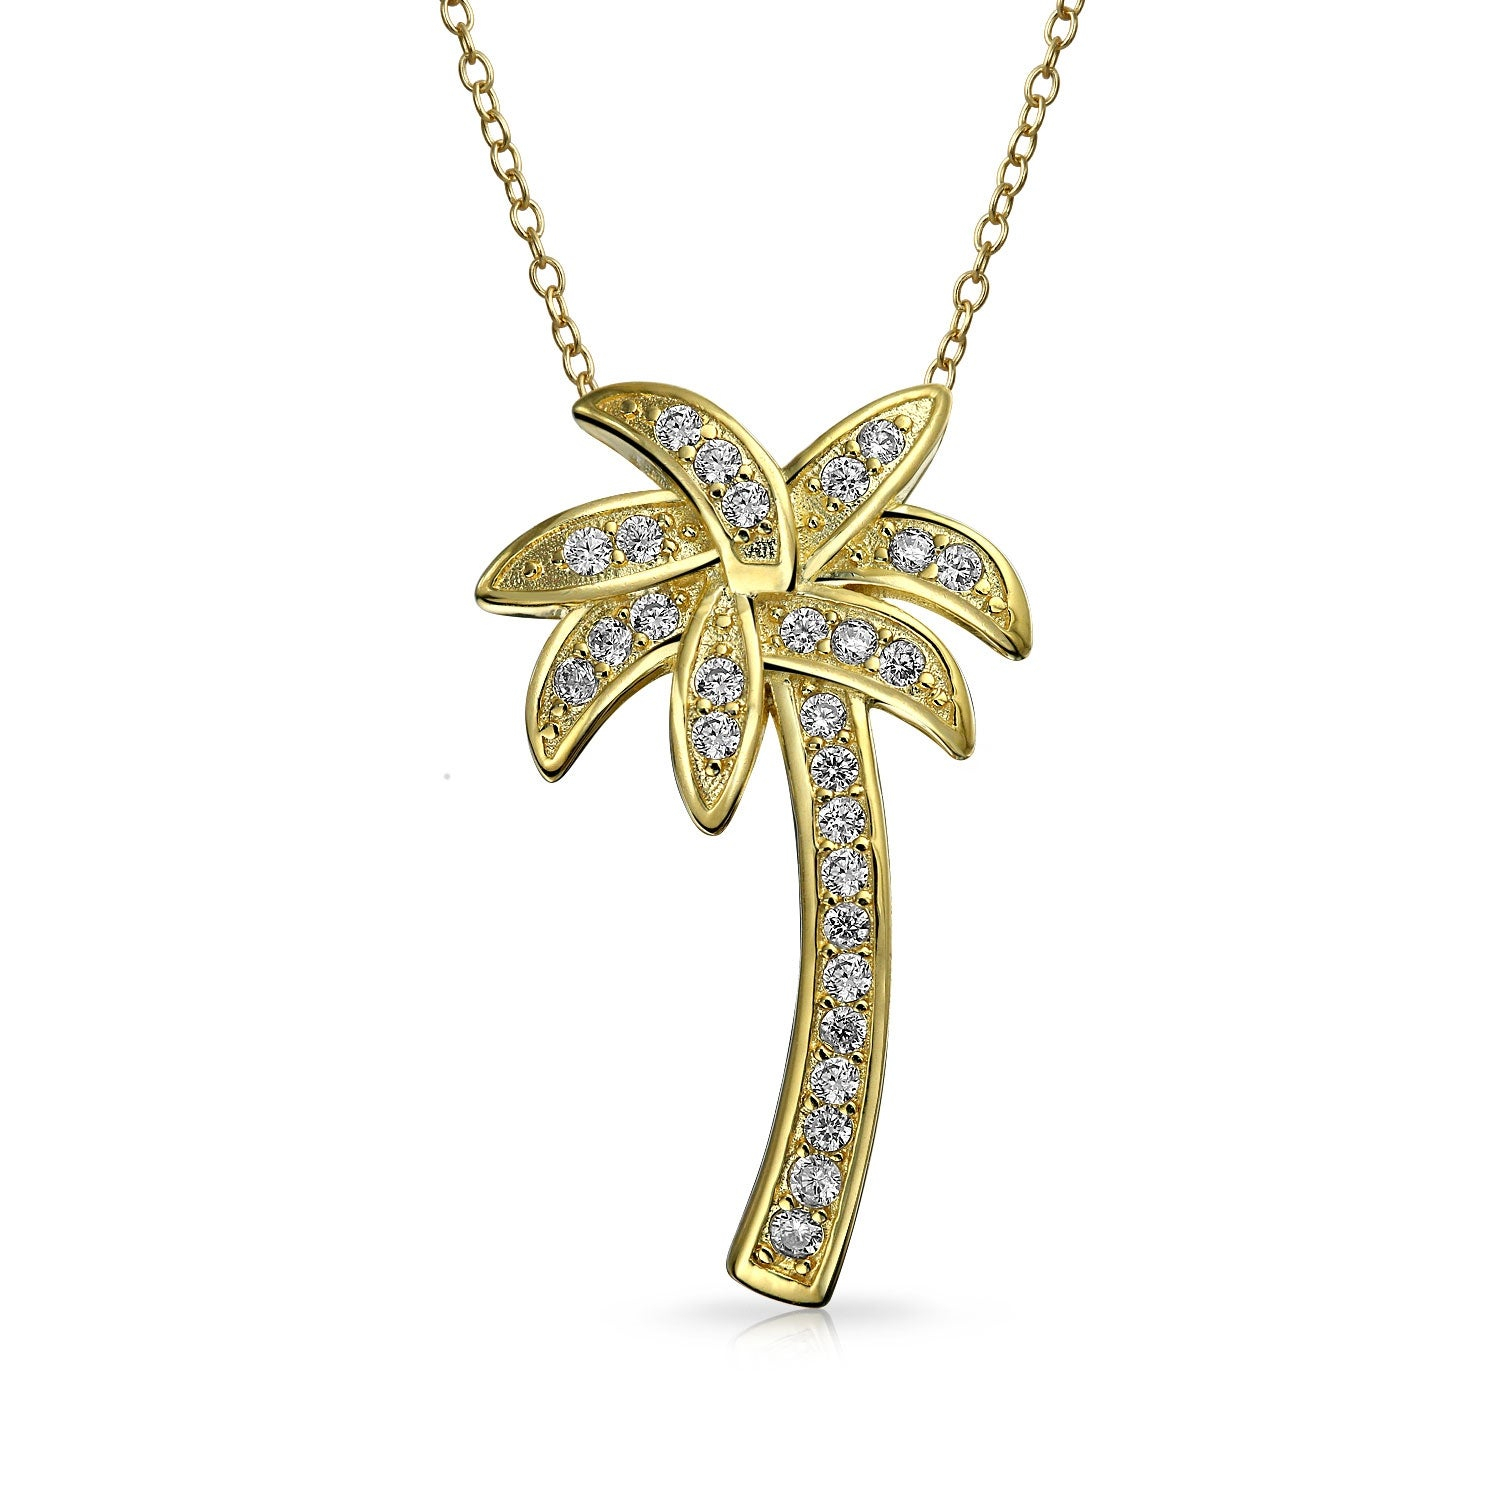 Nautical Palm Tree Tropical Beach Pendant Pave Cubic Zirconia Cz For Women Necklace 14k Gold Plated 925 Sterling Silver Throughout Best And Newest Tropical Palm Pendant Necklaces (View 5 of 25)